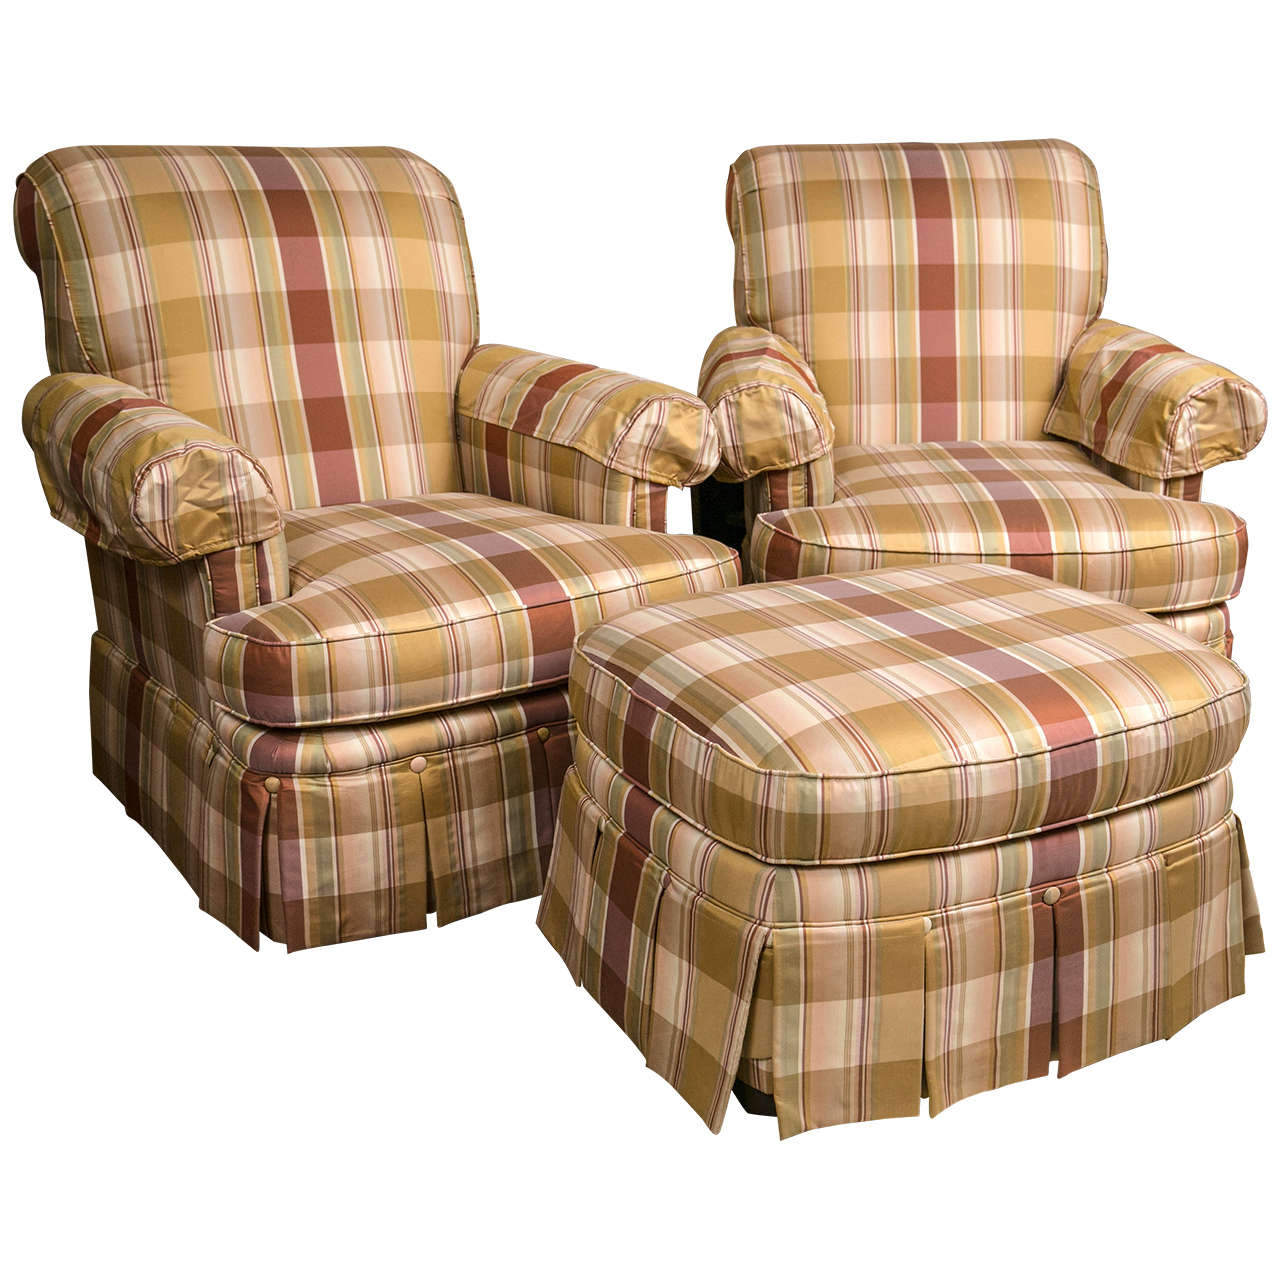 Charmant Pair Of Custom Quality Silk Upholstered Plaid Club Chairs And Ottoman For  Sale